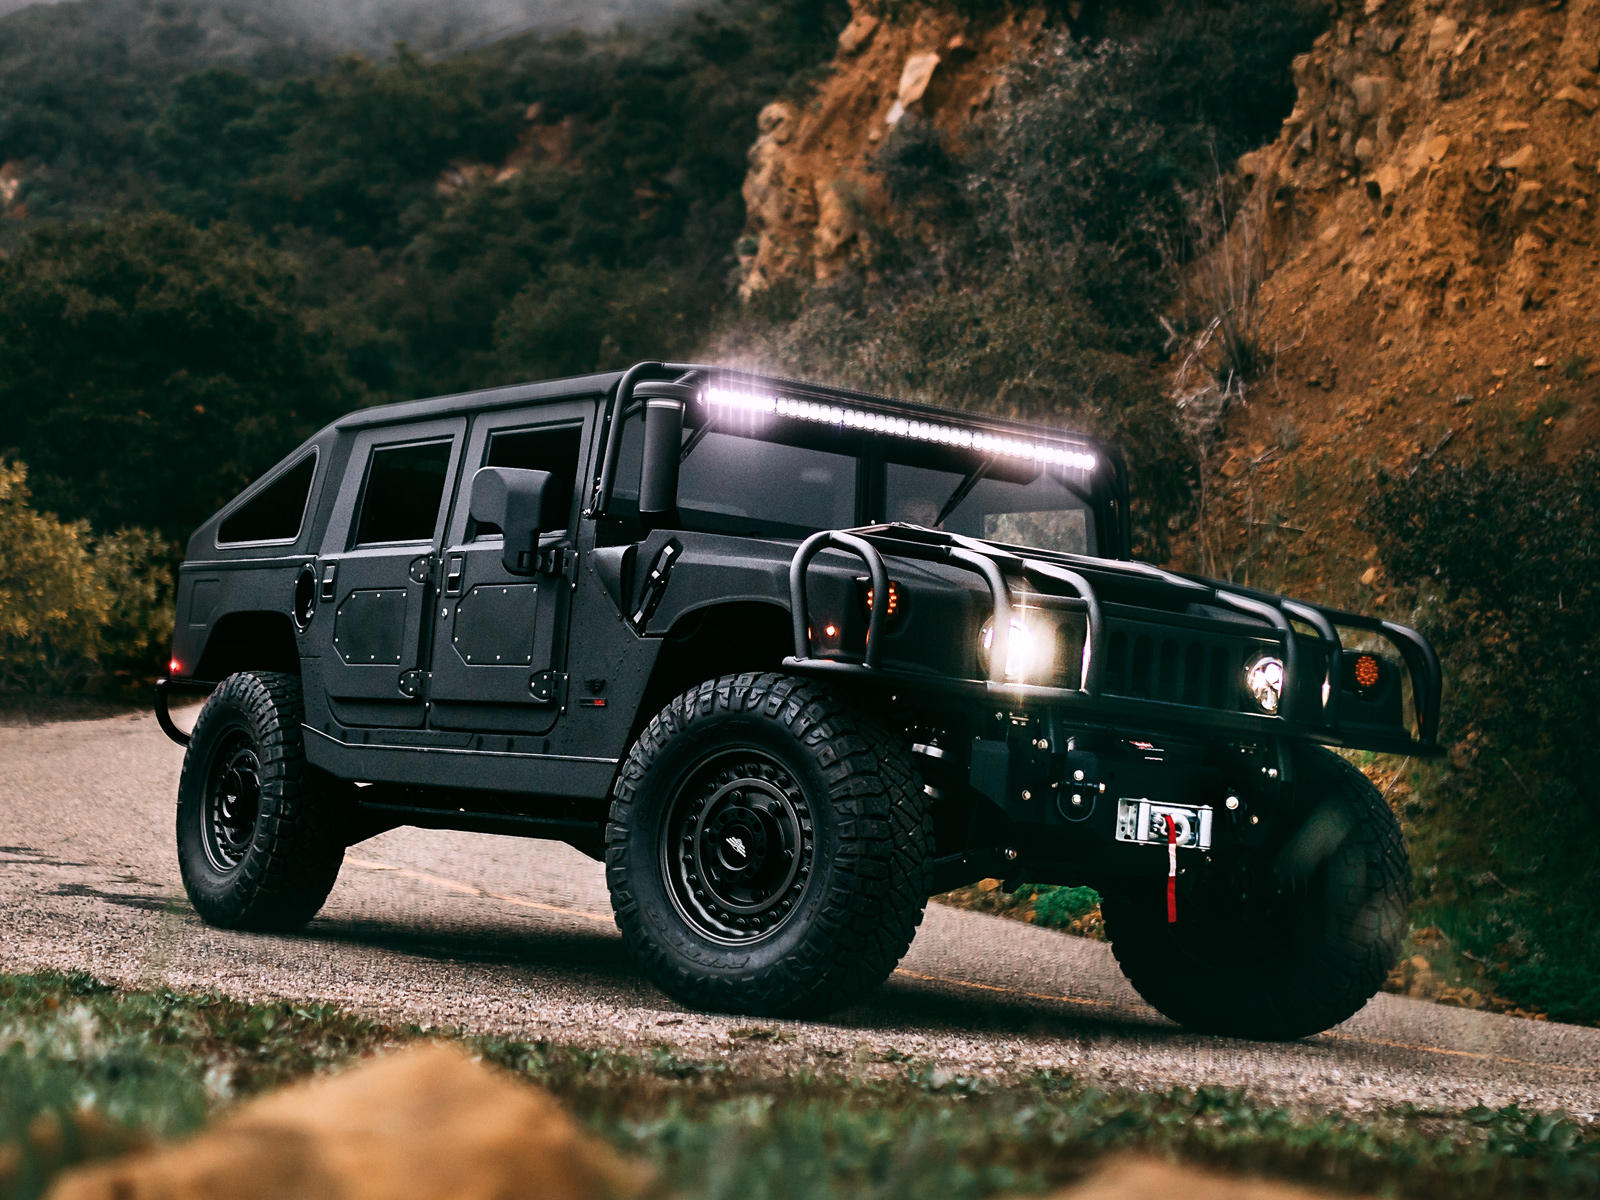 2019 Hummer H1 Price, Concept, Specs >> Reborn Hummer H1 Is So Much Better Than The Original Carbuzz